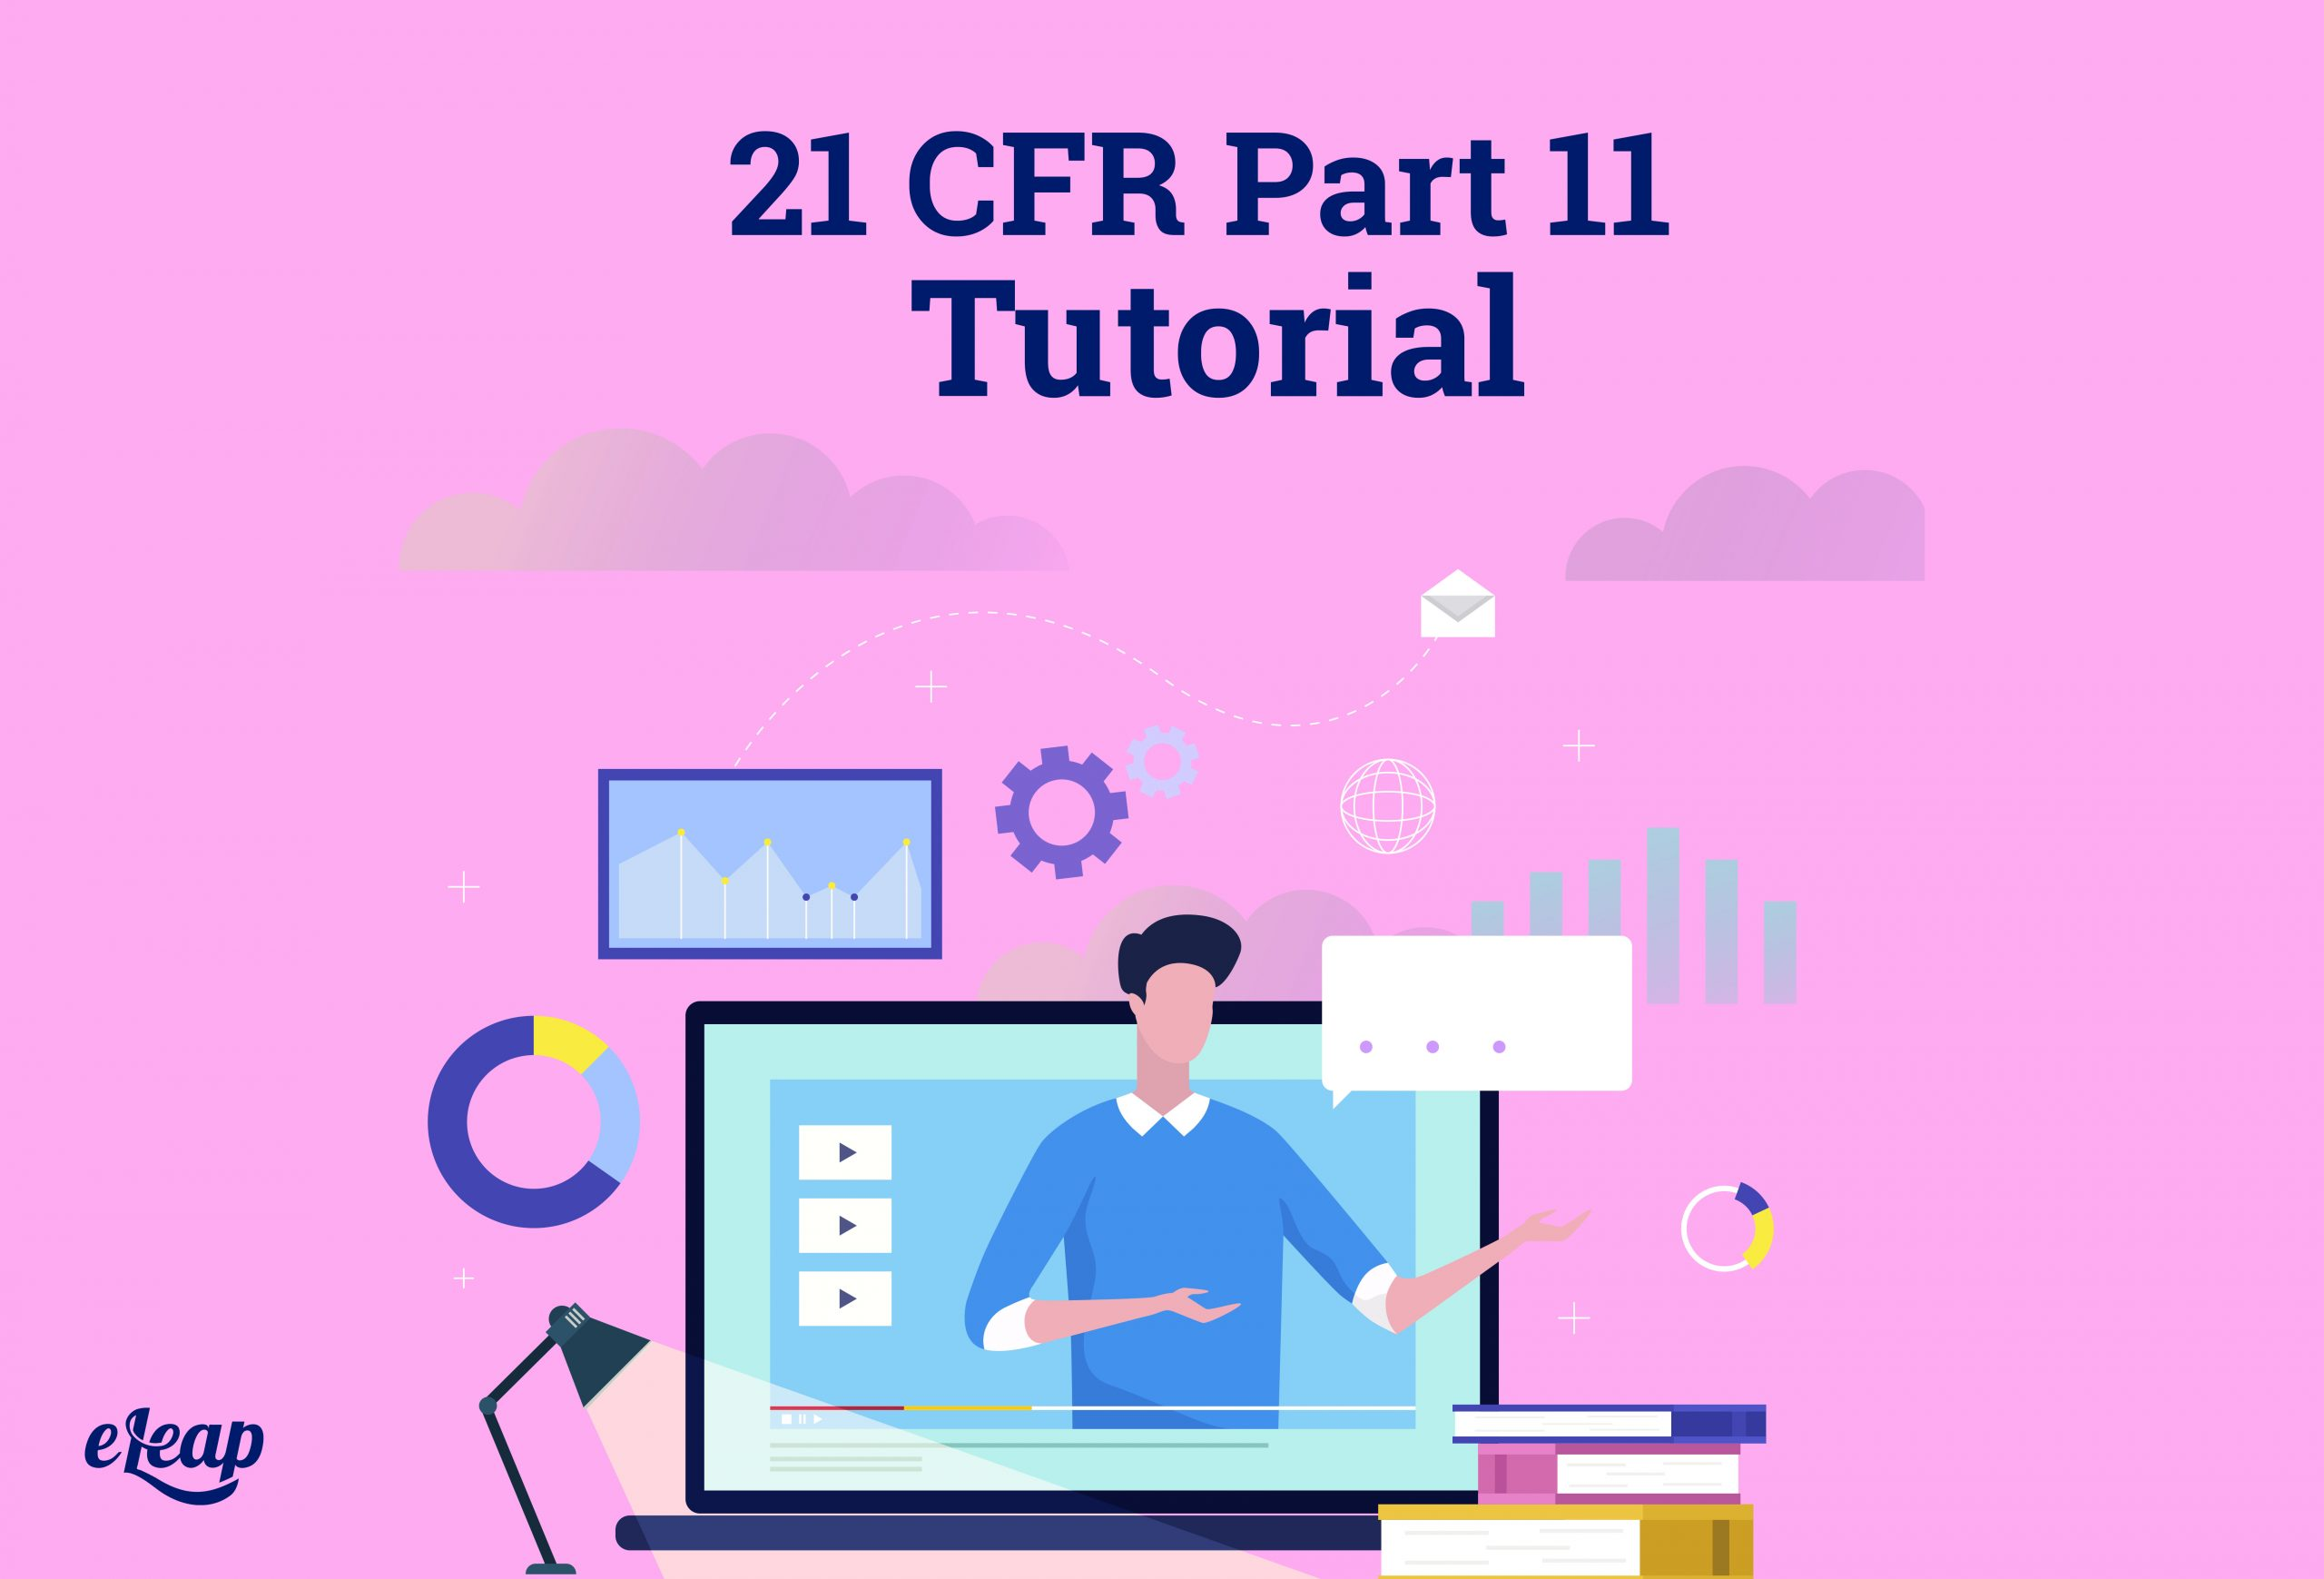 21 CFR Part 11 Tutorial